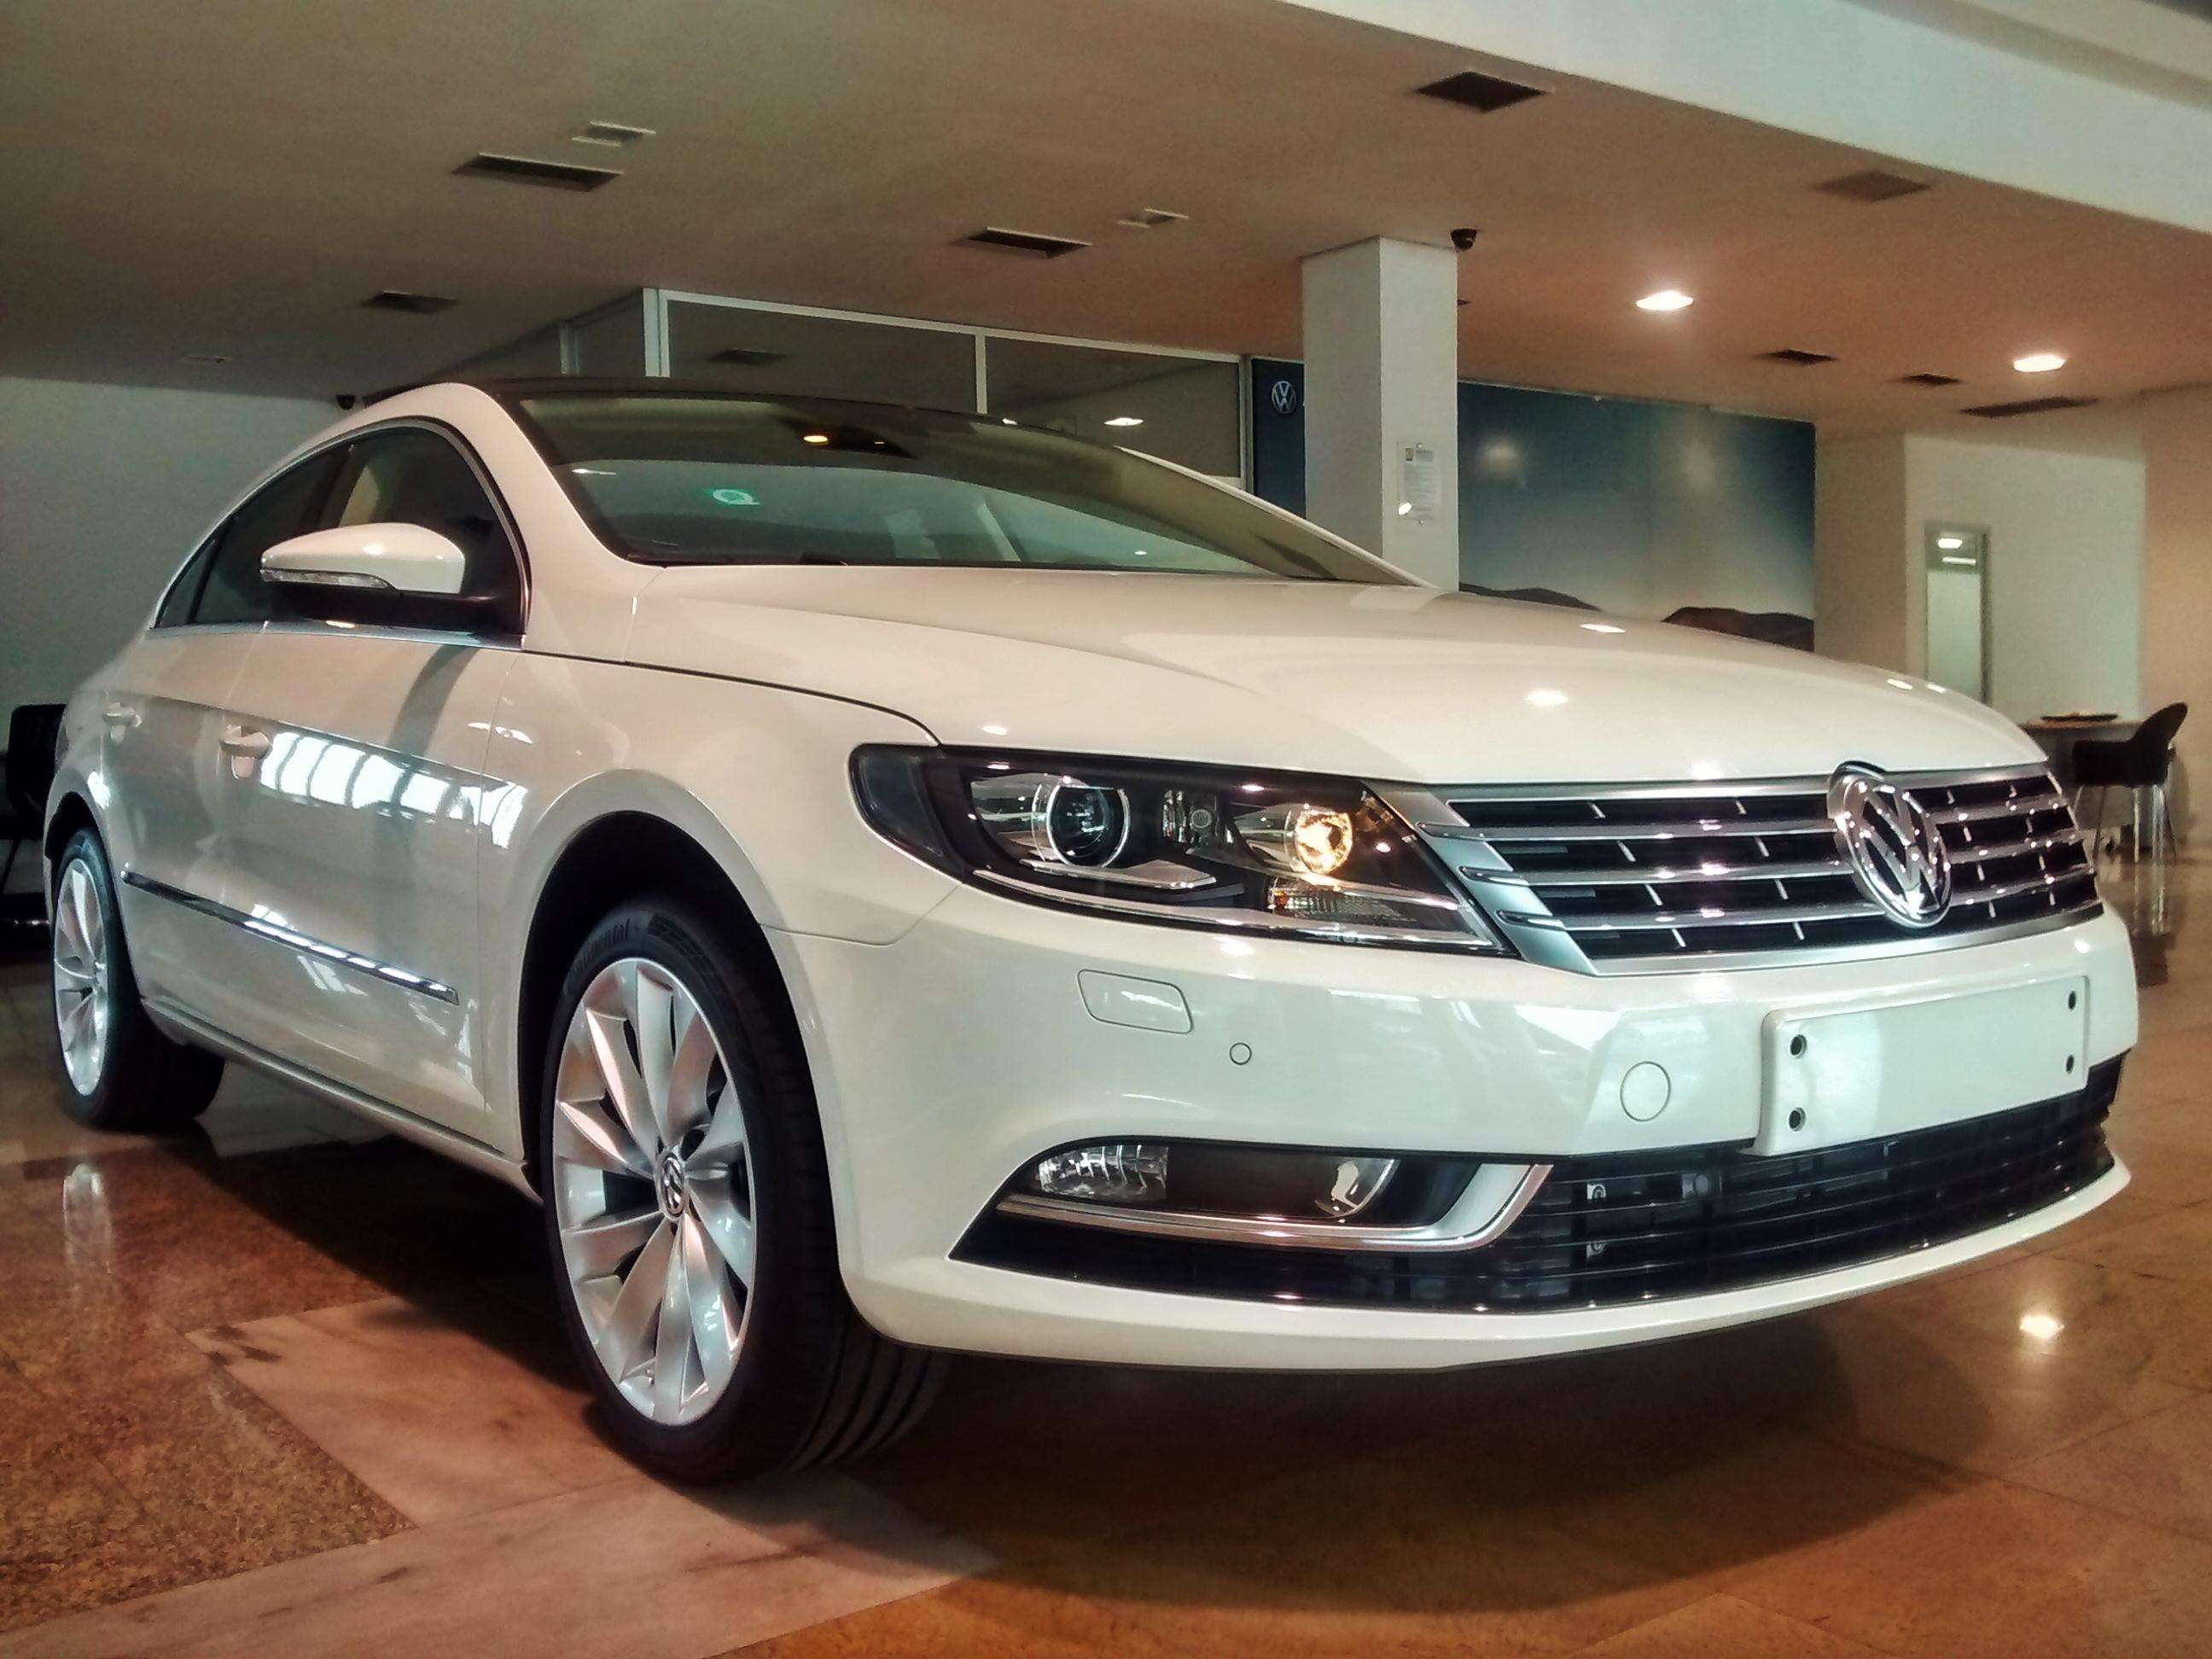 Volkswagen CC esbanja design, performance e requinte